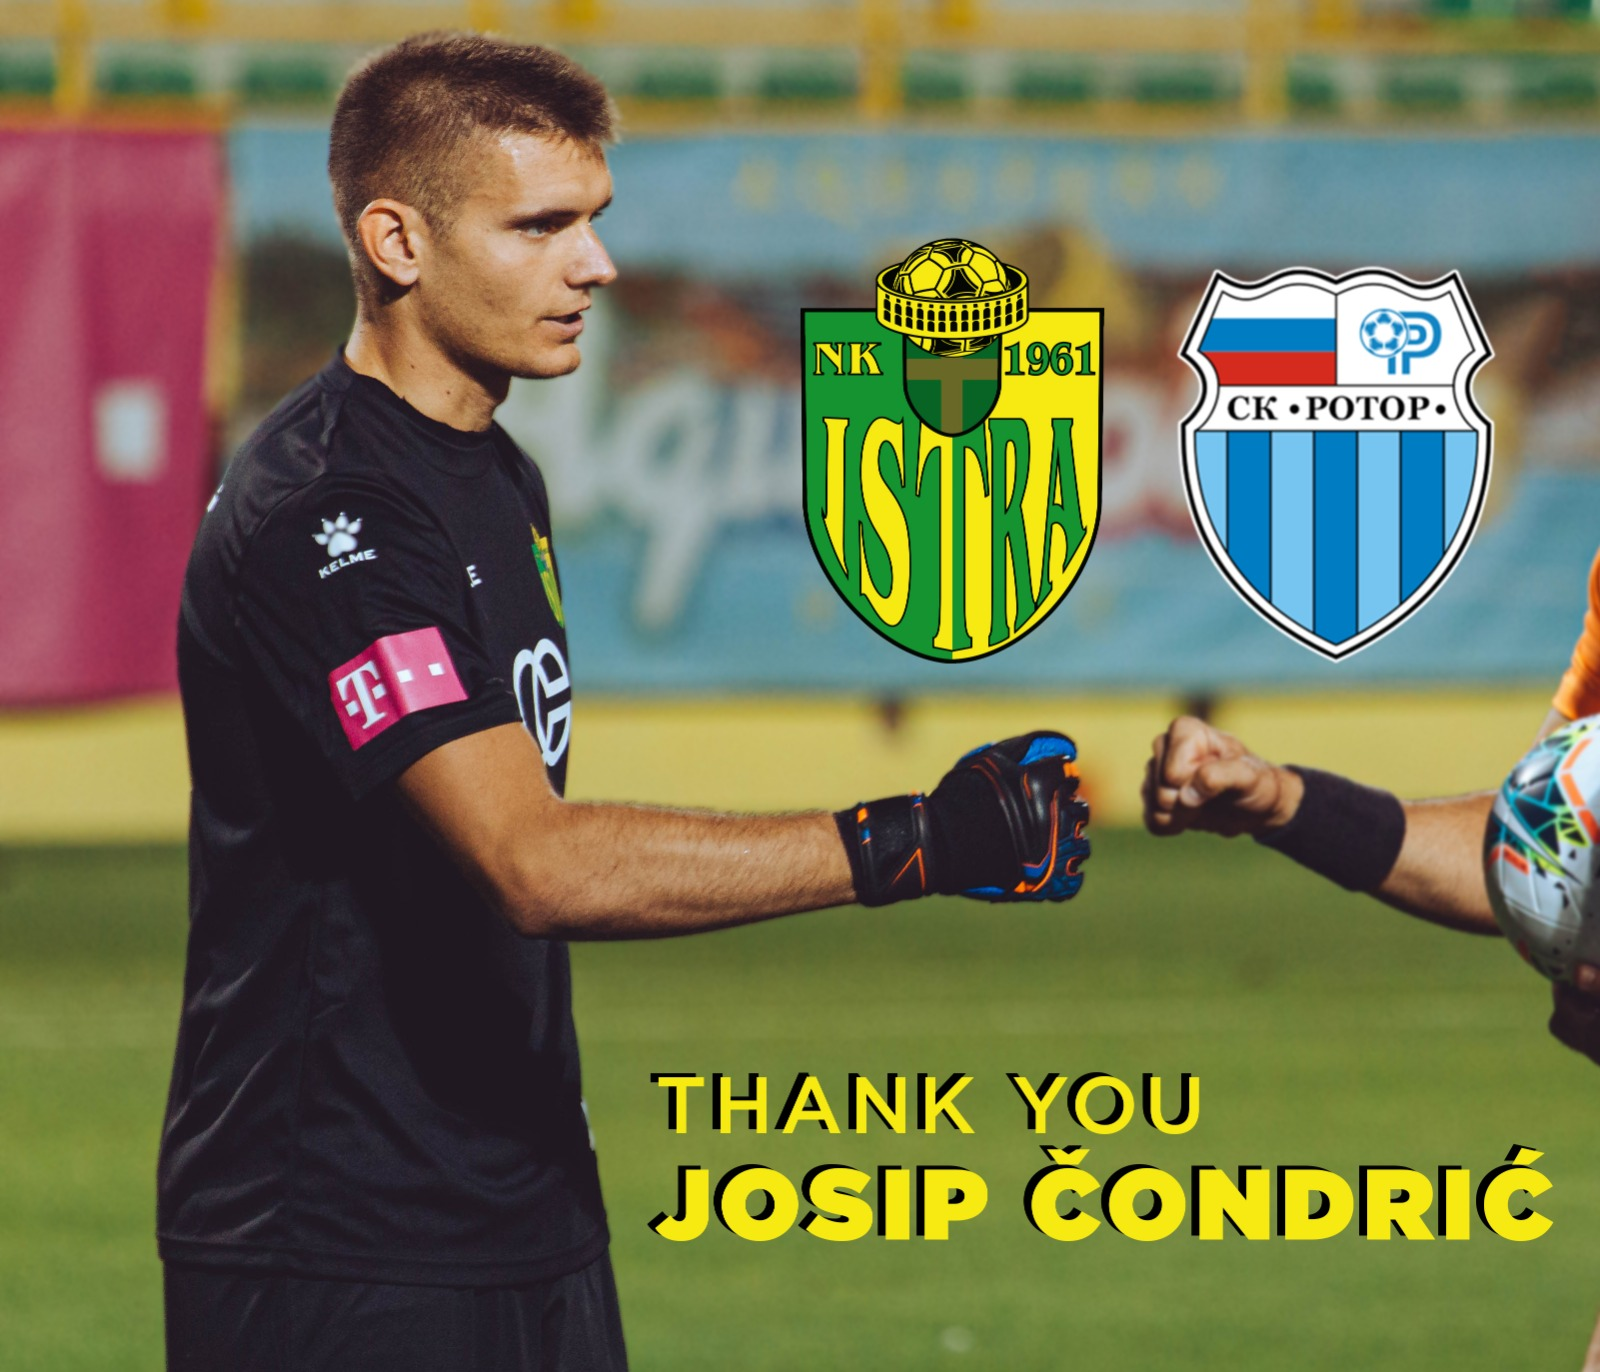 Josip Condric Is No Longer A Player Of Istra 1961 Nk Istra 1961